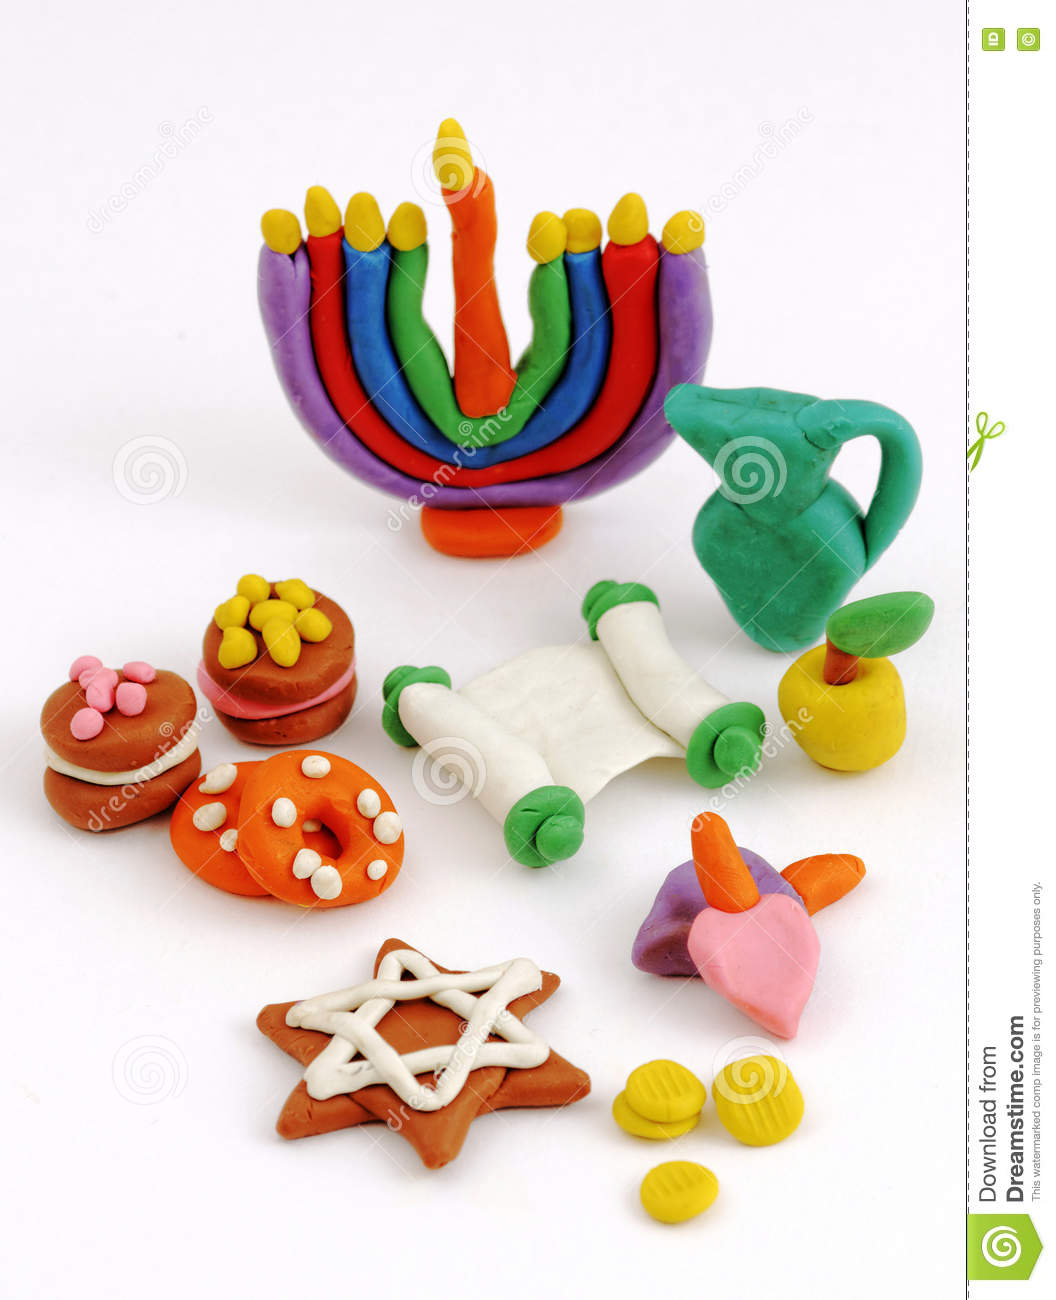 Hanukkah handmade plasticine toys. Modeling clay colorful texture. Isolated on white background